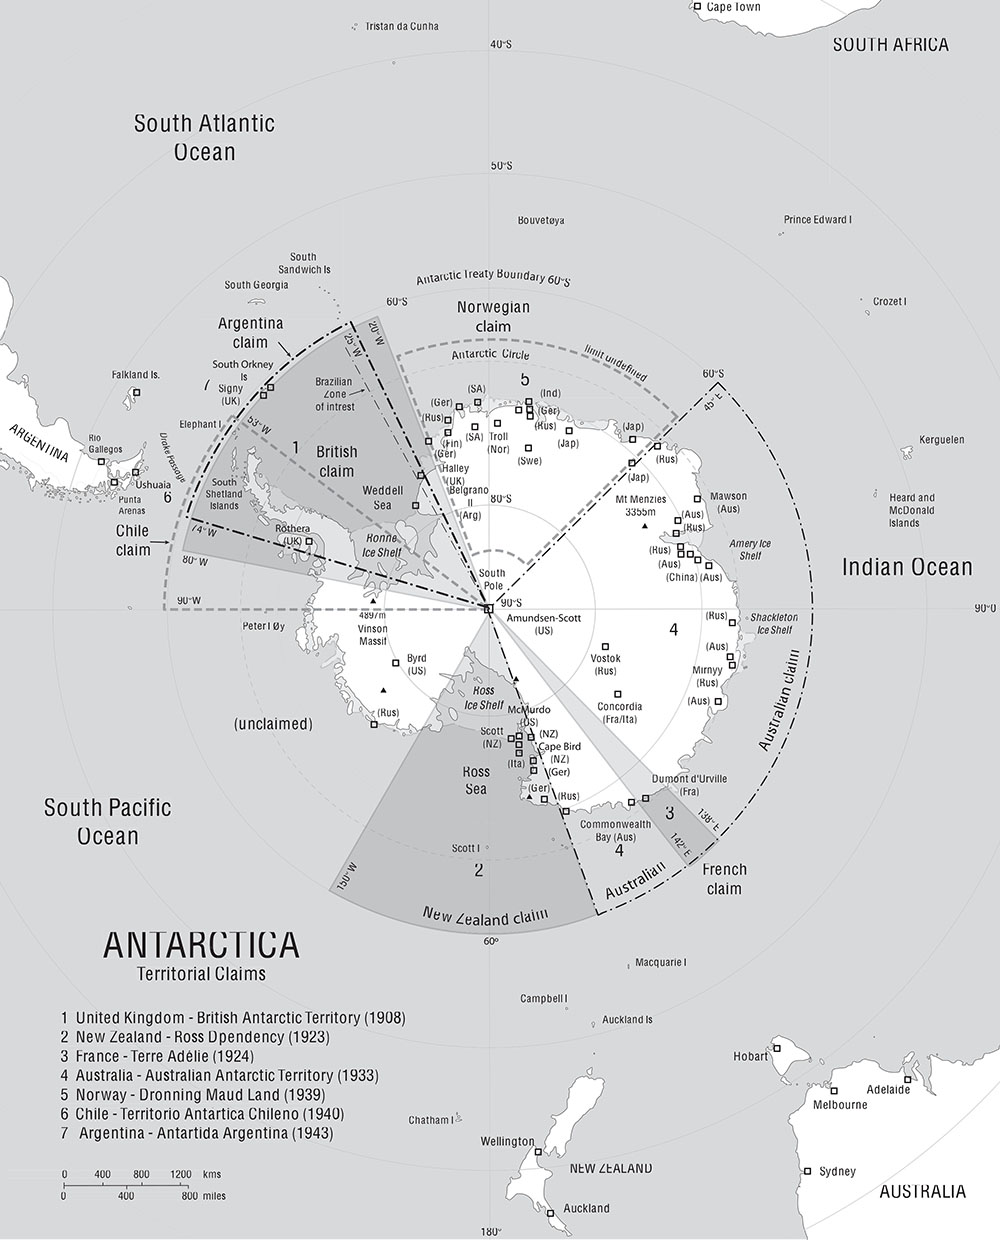 antarctic%20claims.jpg